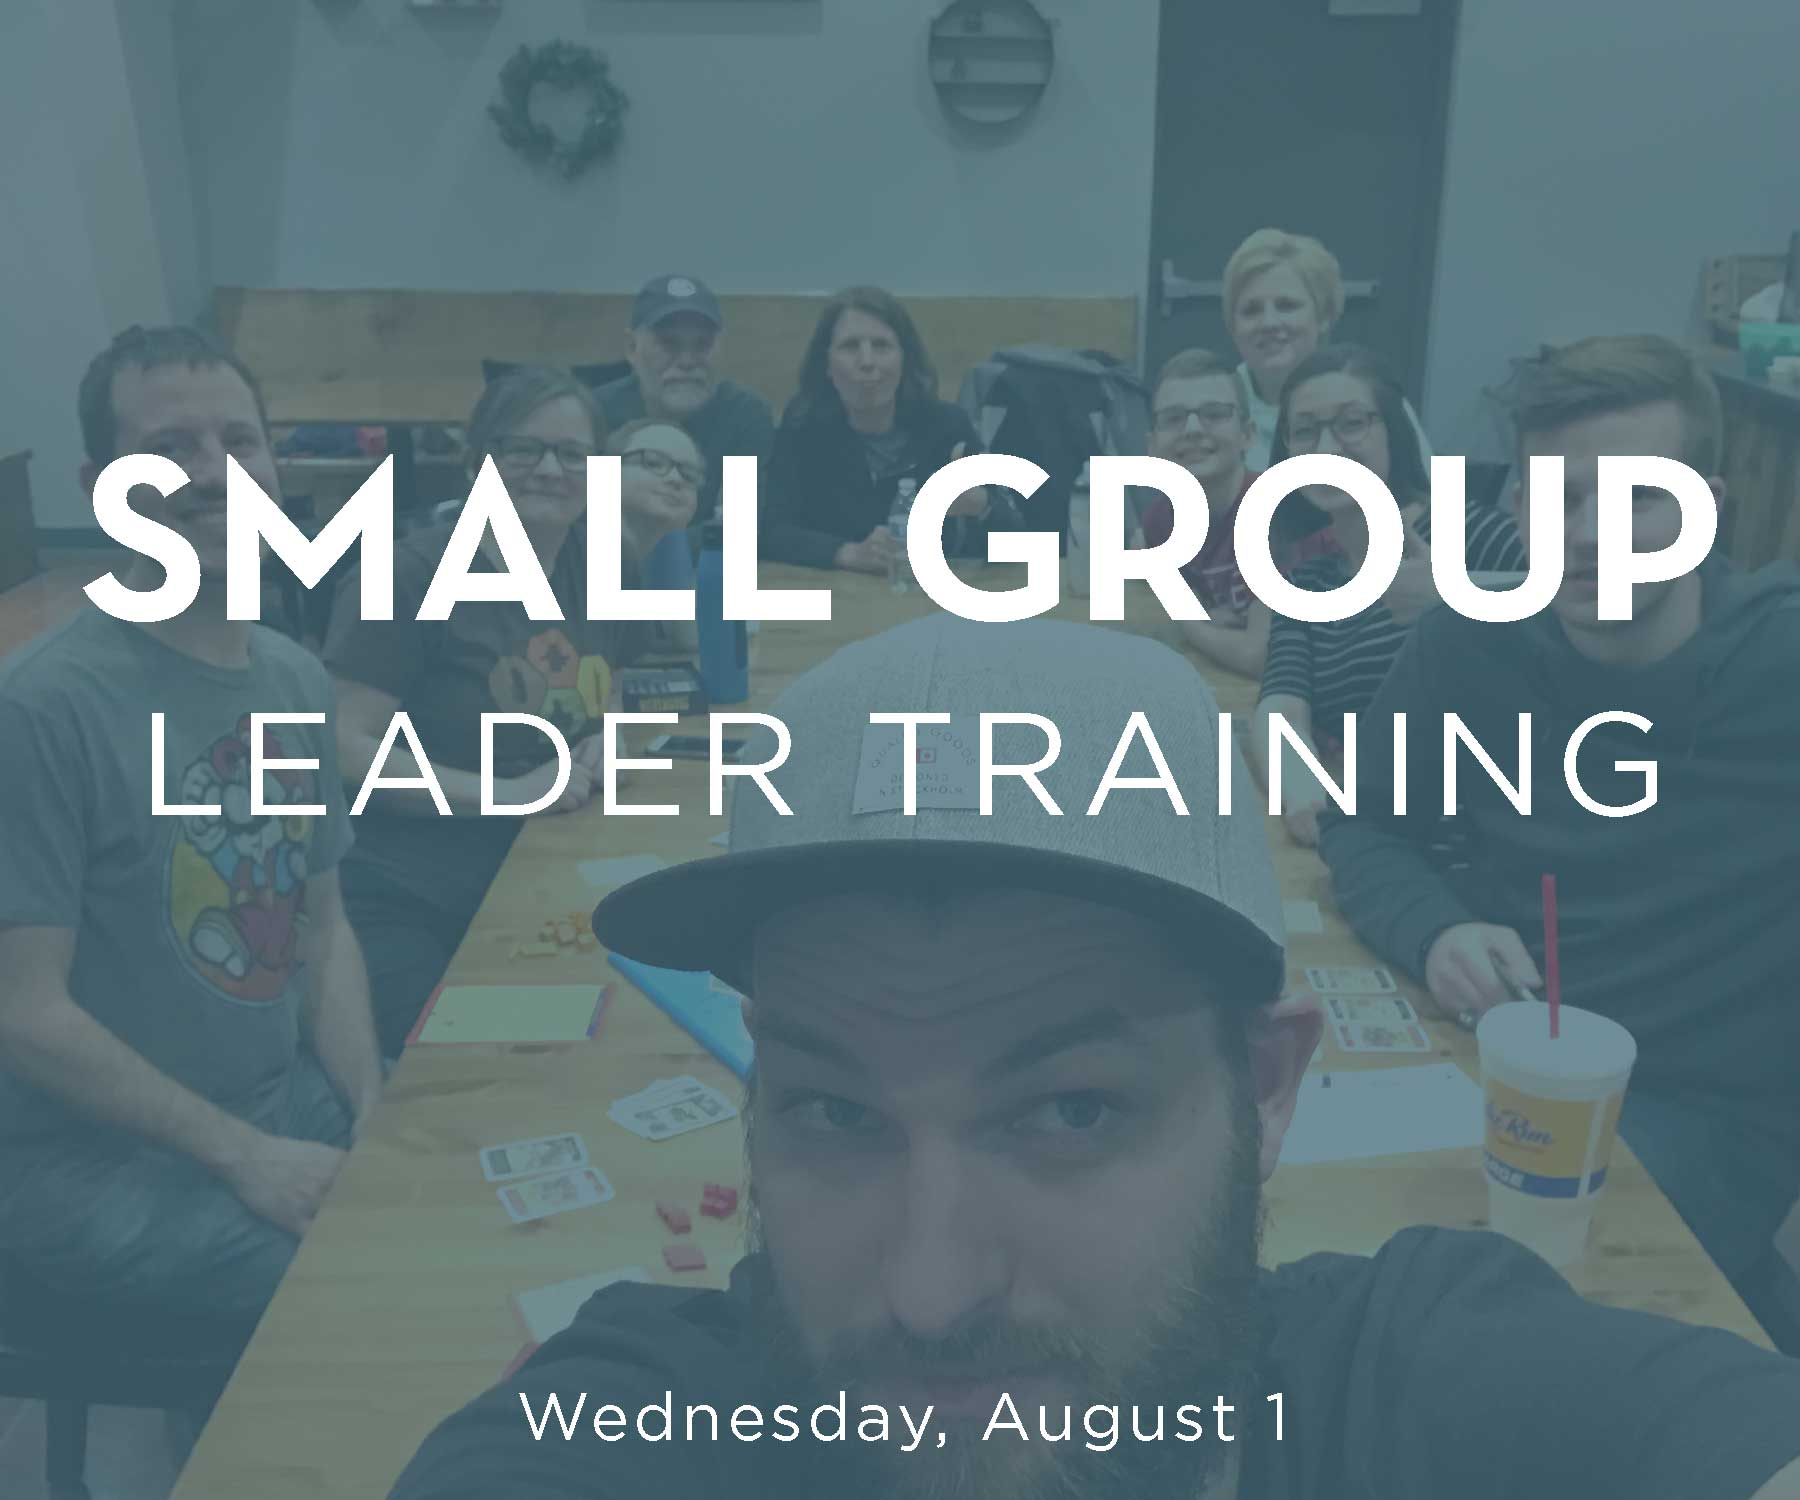 Small group leader training reg august 1